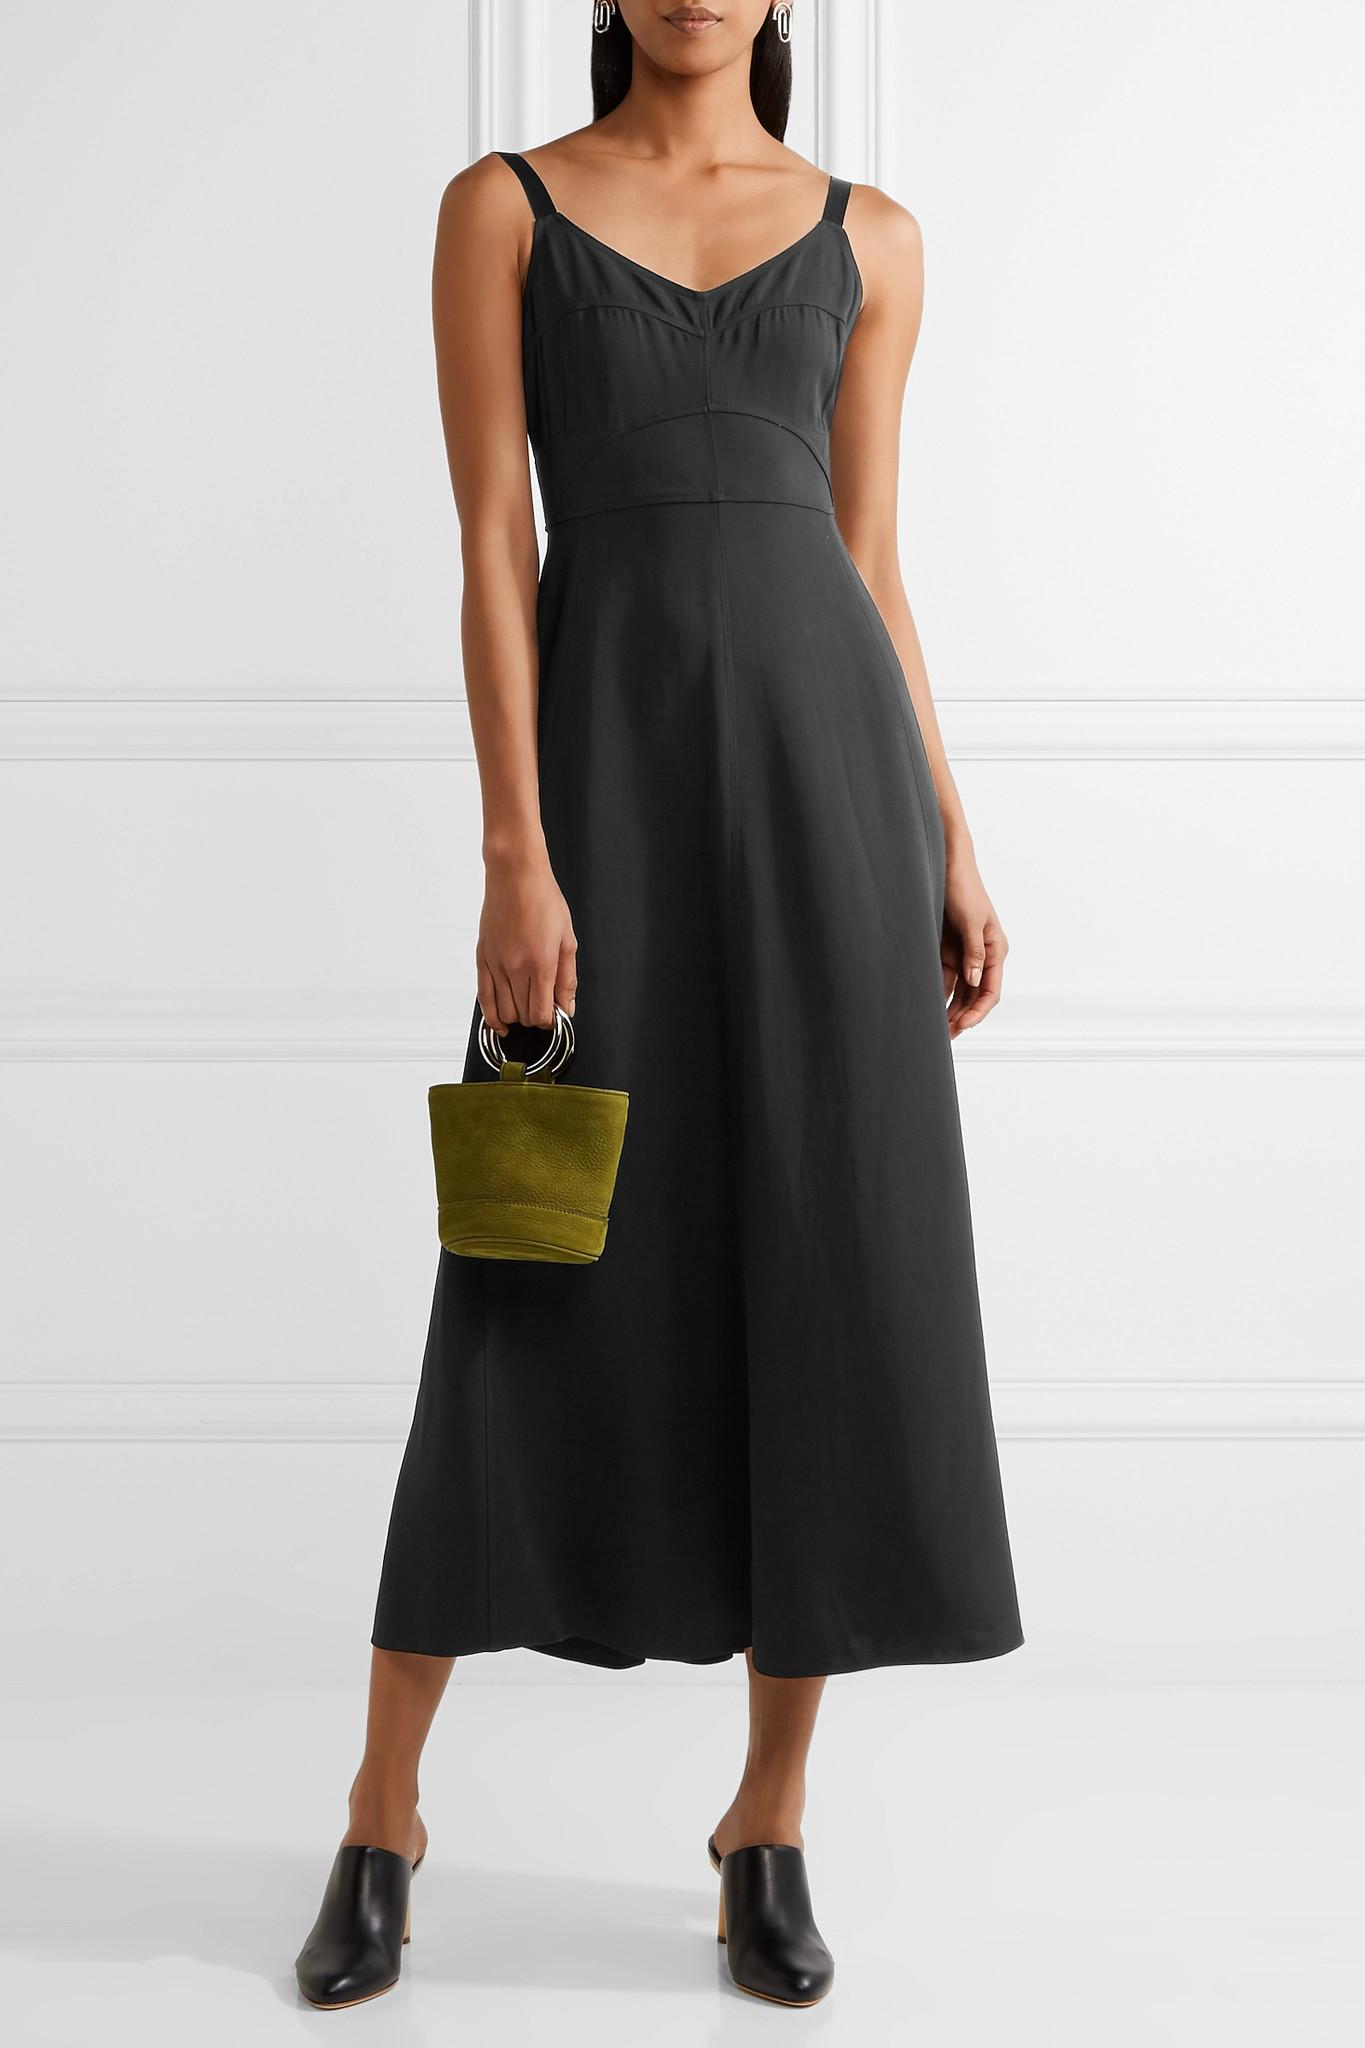 Cynthia Cutout Stretch-crepe Midi Dress - Black Elizabeth & James